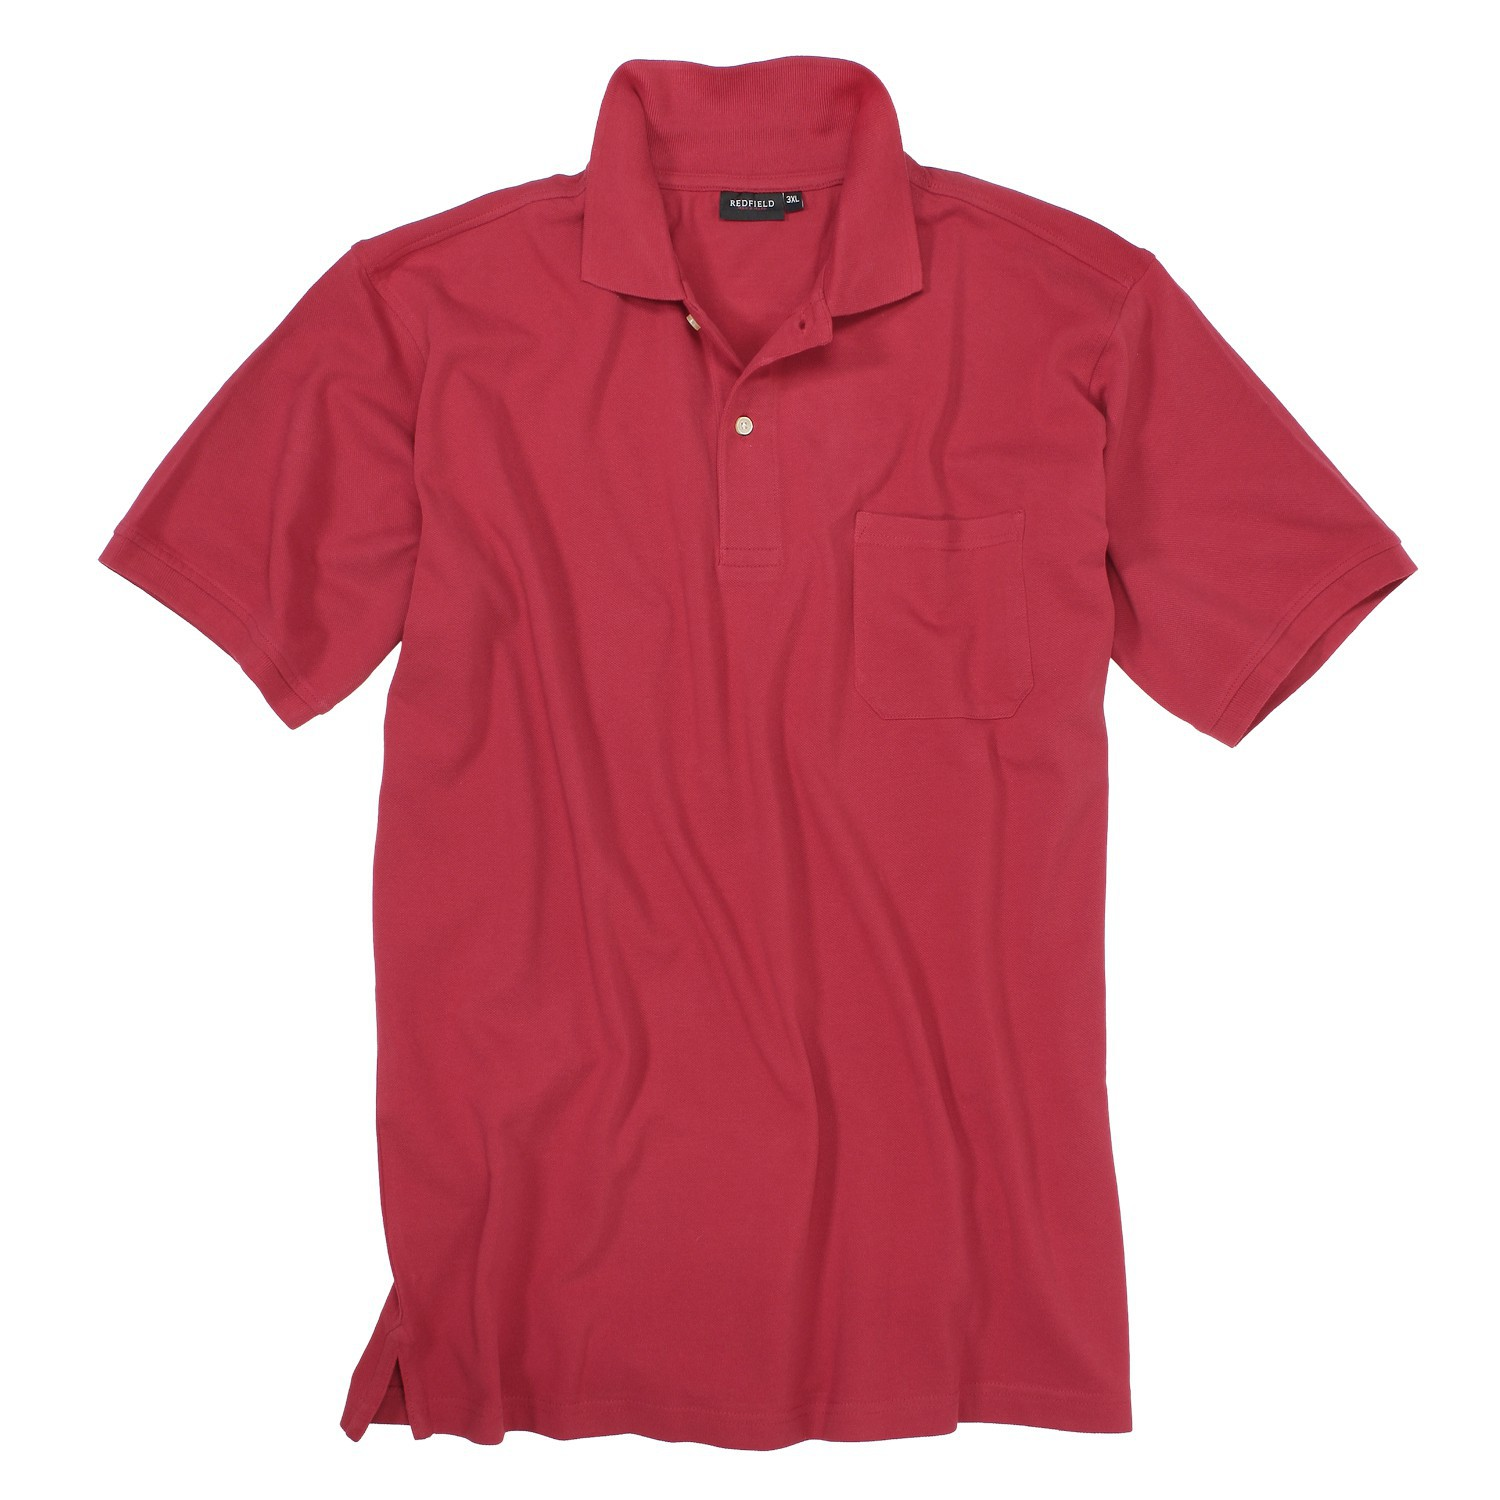 Detail Image to Red polo shirt by Redfield in plus sizes until 8XL